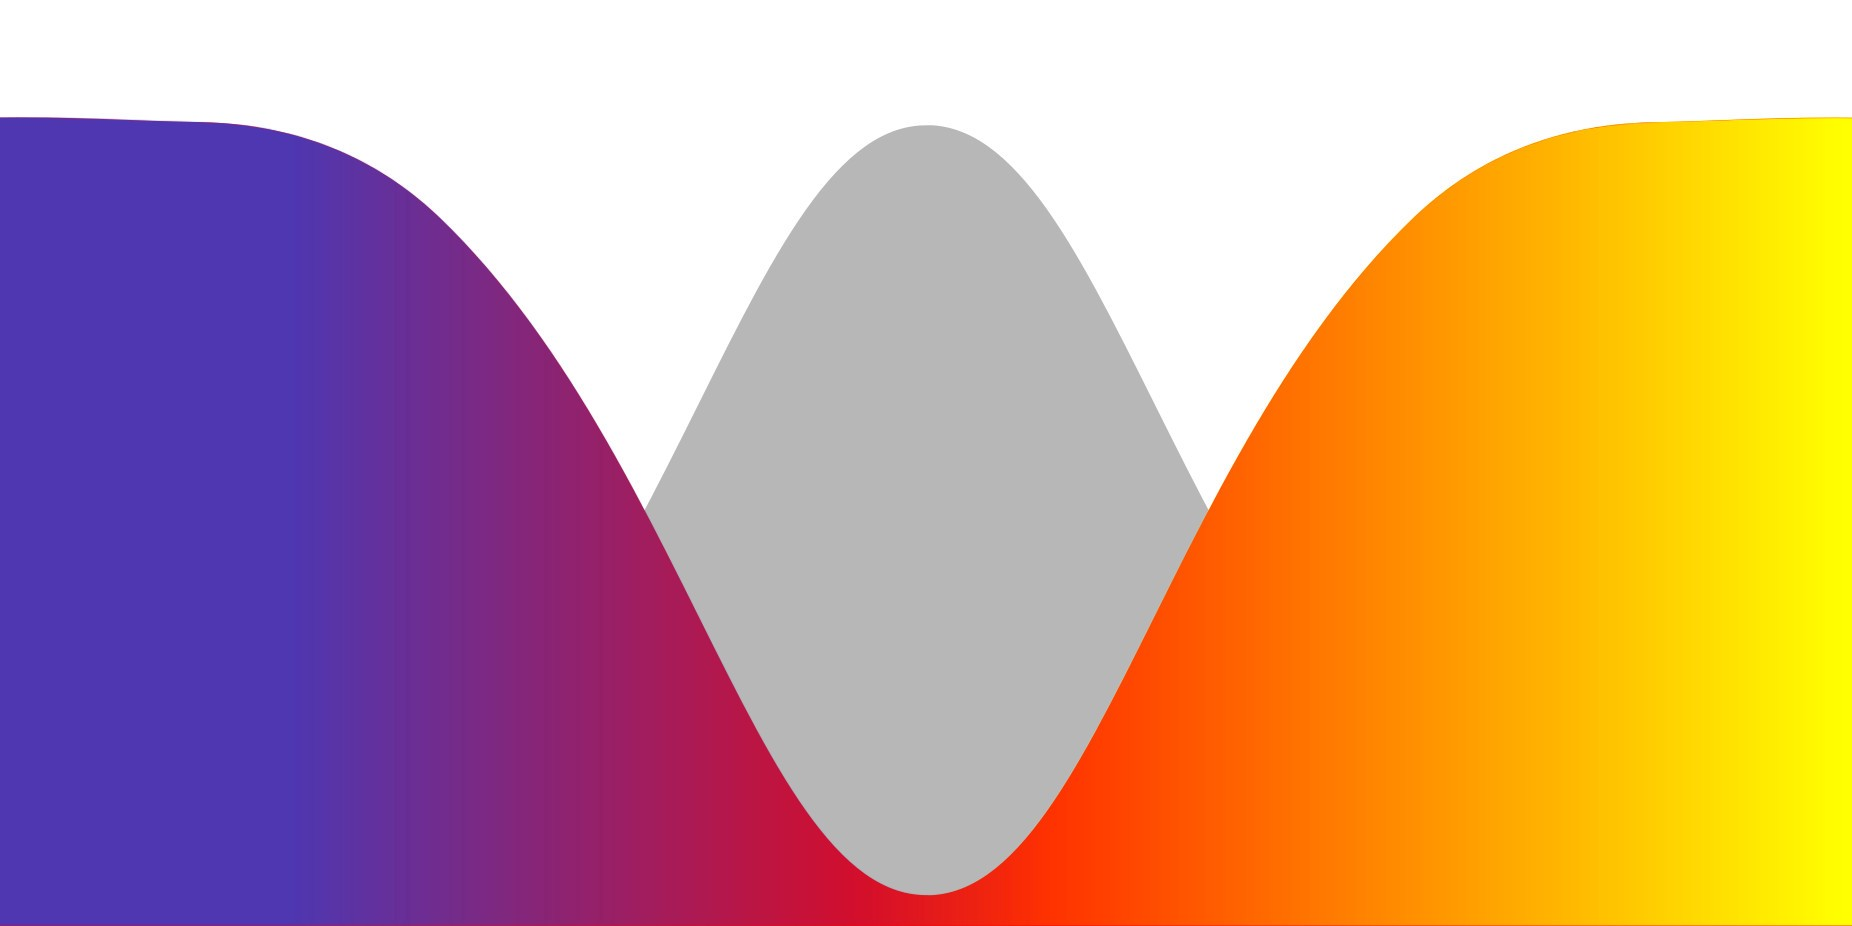 Weird Pride flag: An inversion of the normal curve, with the colourful outliers elevated and foregrounded against a standard normal curve in the background.